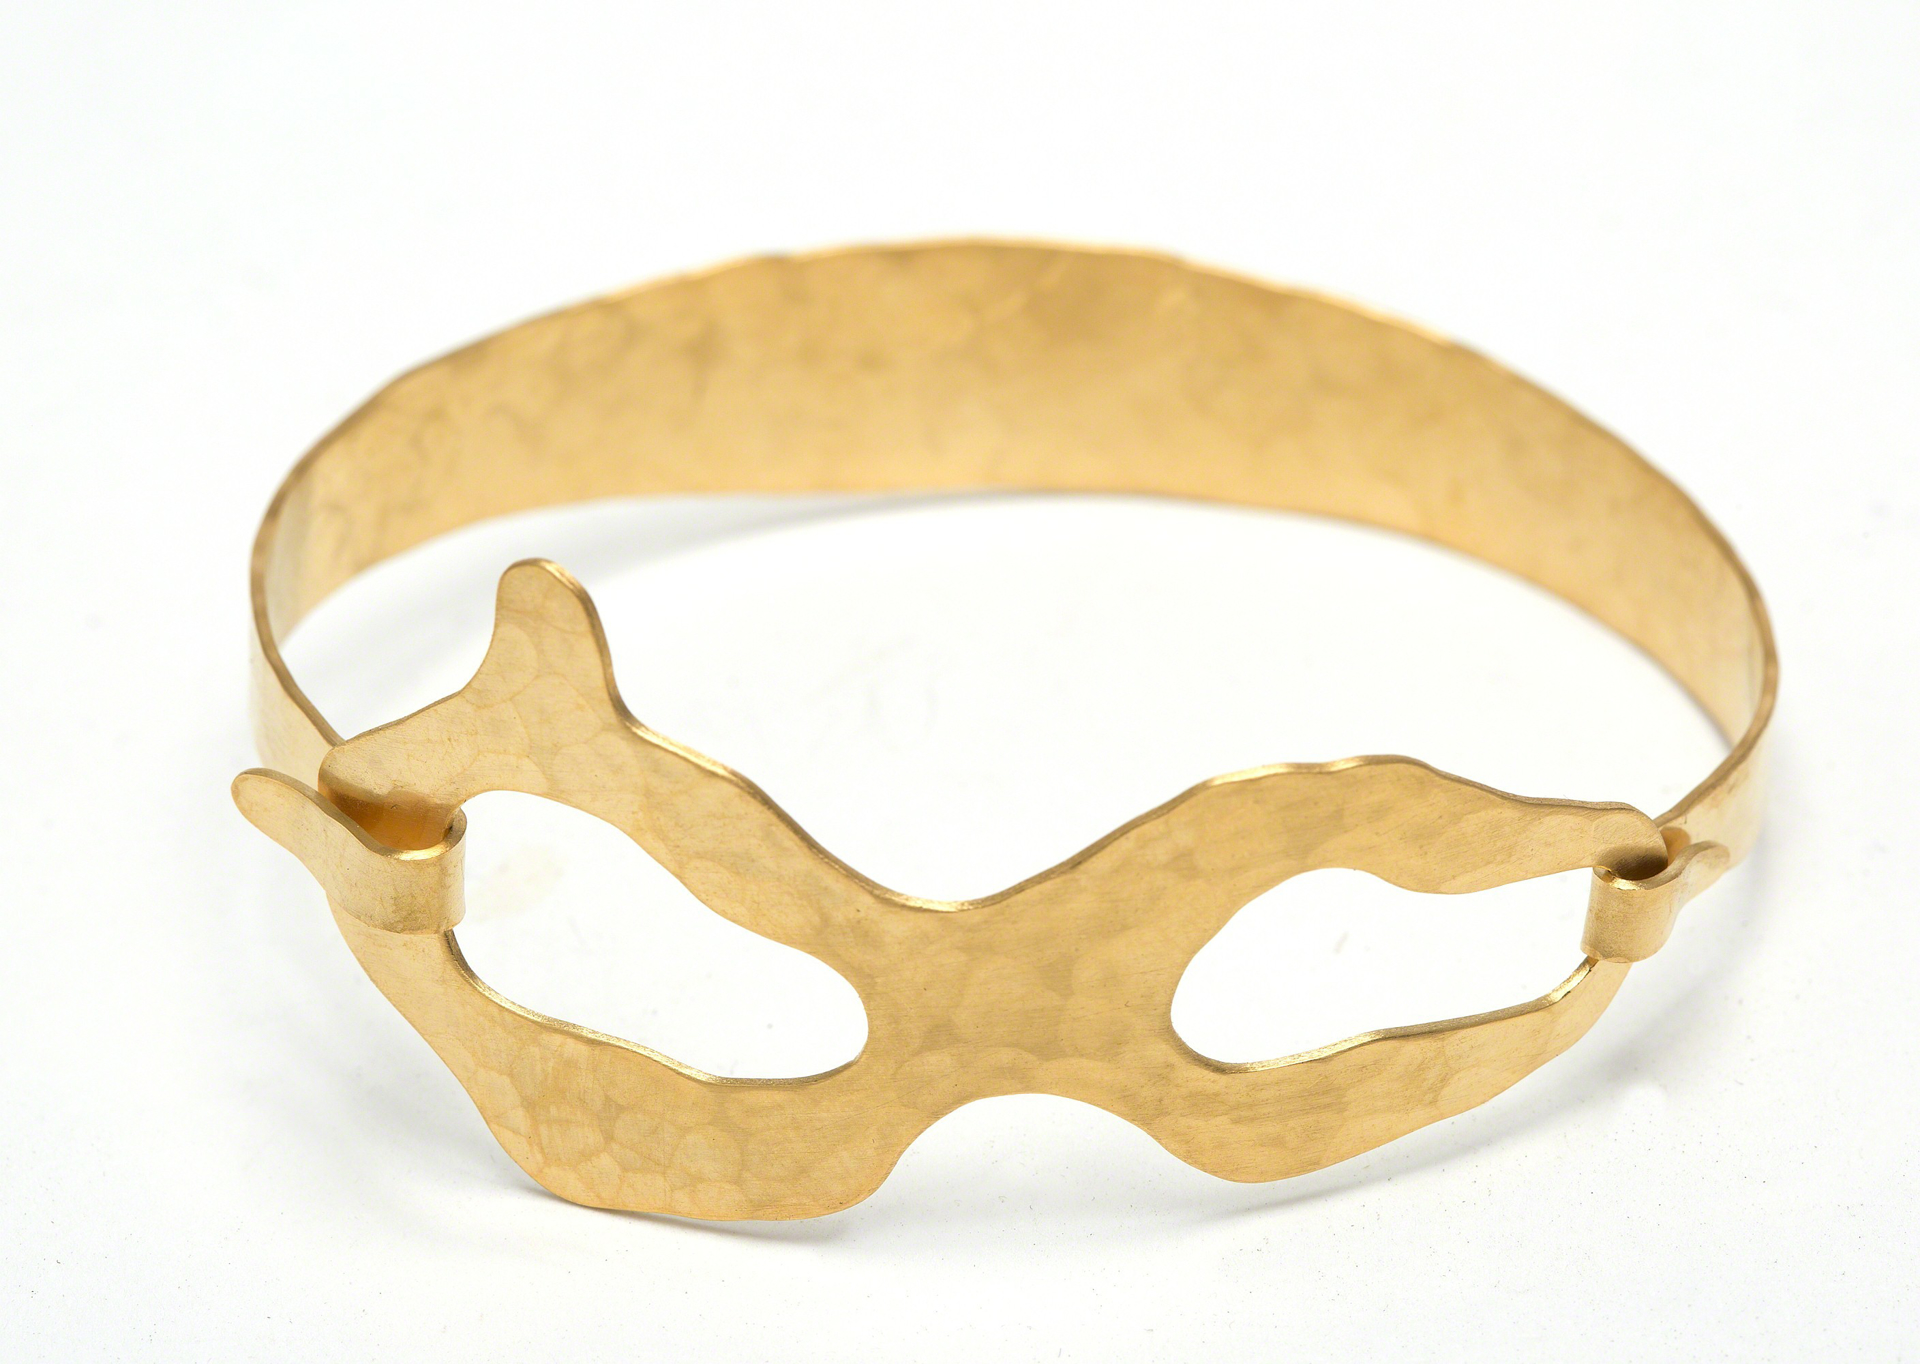 """Duo"" Bracelet by Jacques Jarrige"